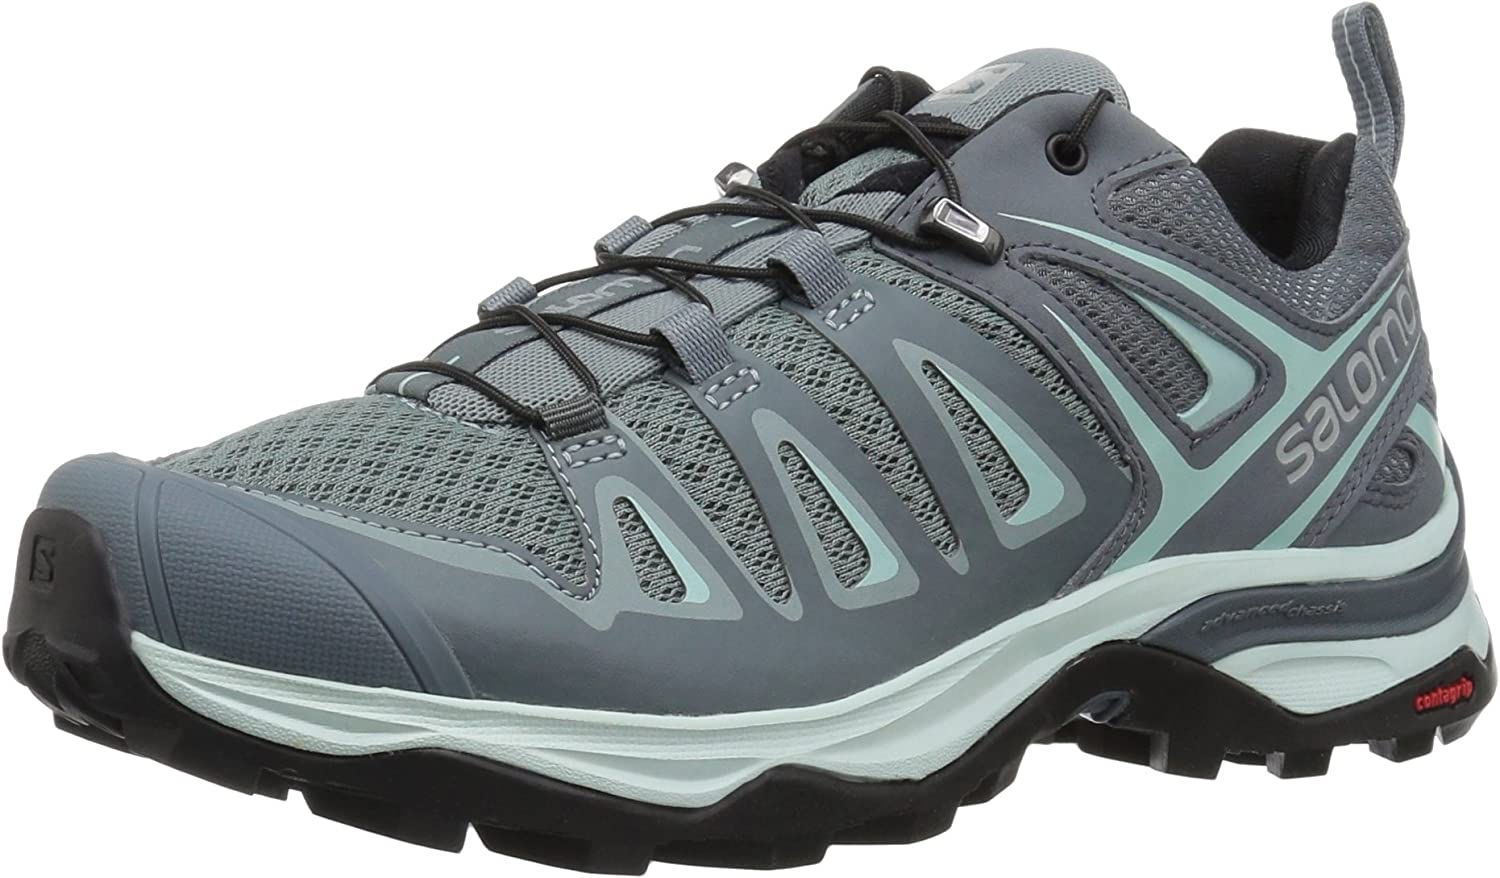 Salomon X Ultra 3 Women's Hiking Shoes